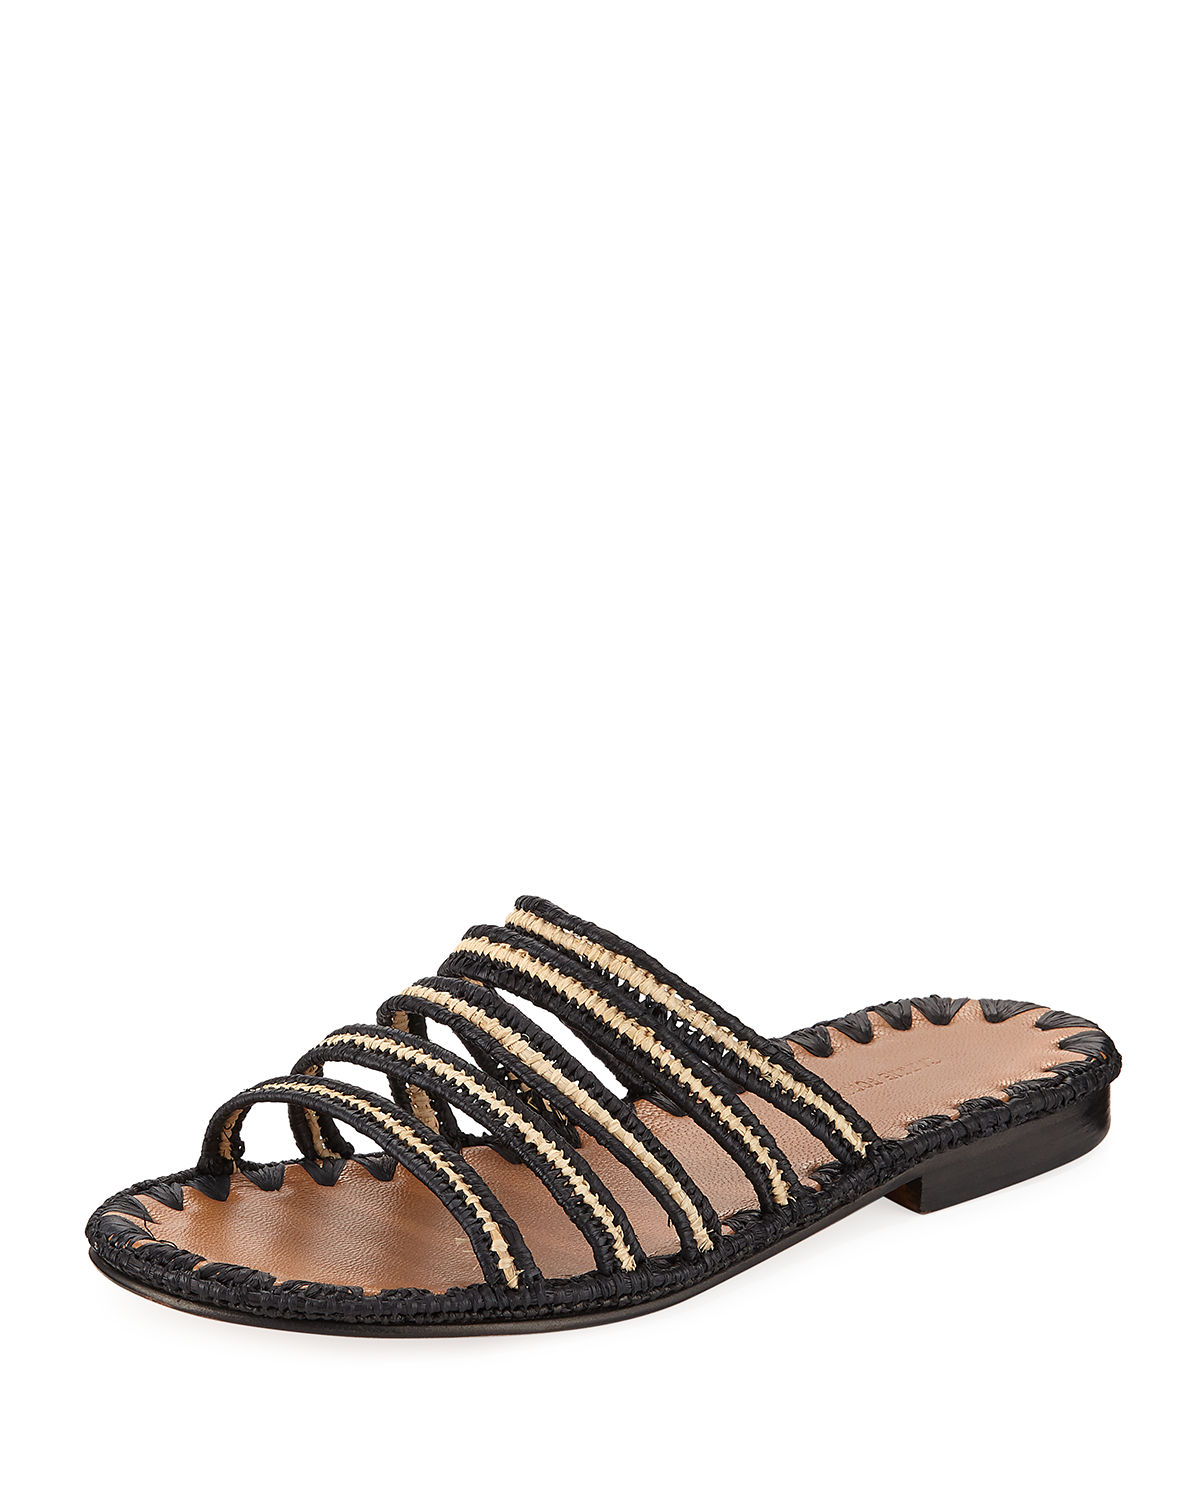 Carrie Forbes Leathers ASMAA WOVEN STRAPPY SLIDE SANDALS